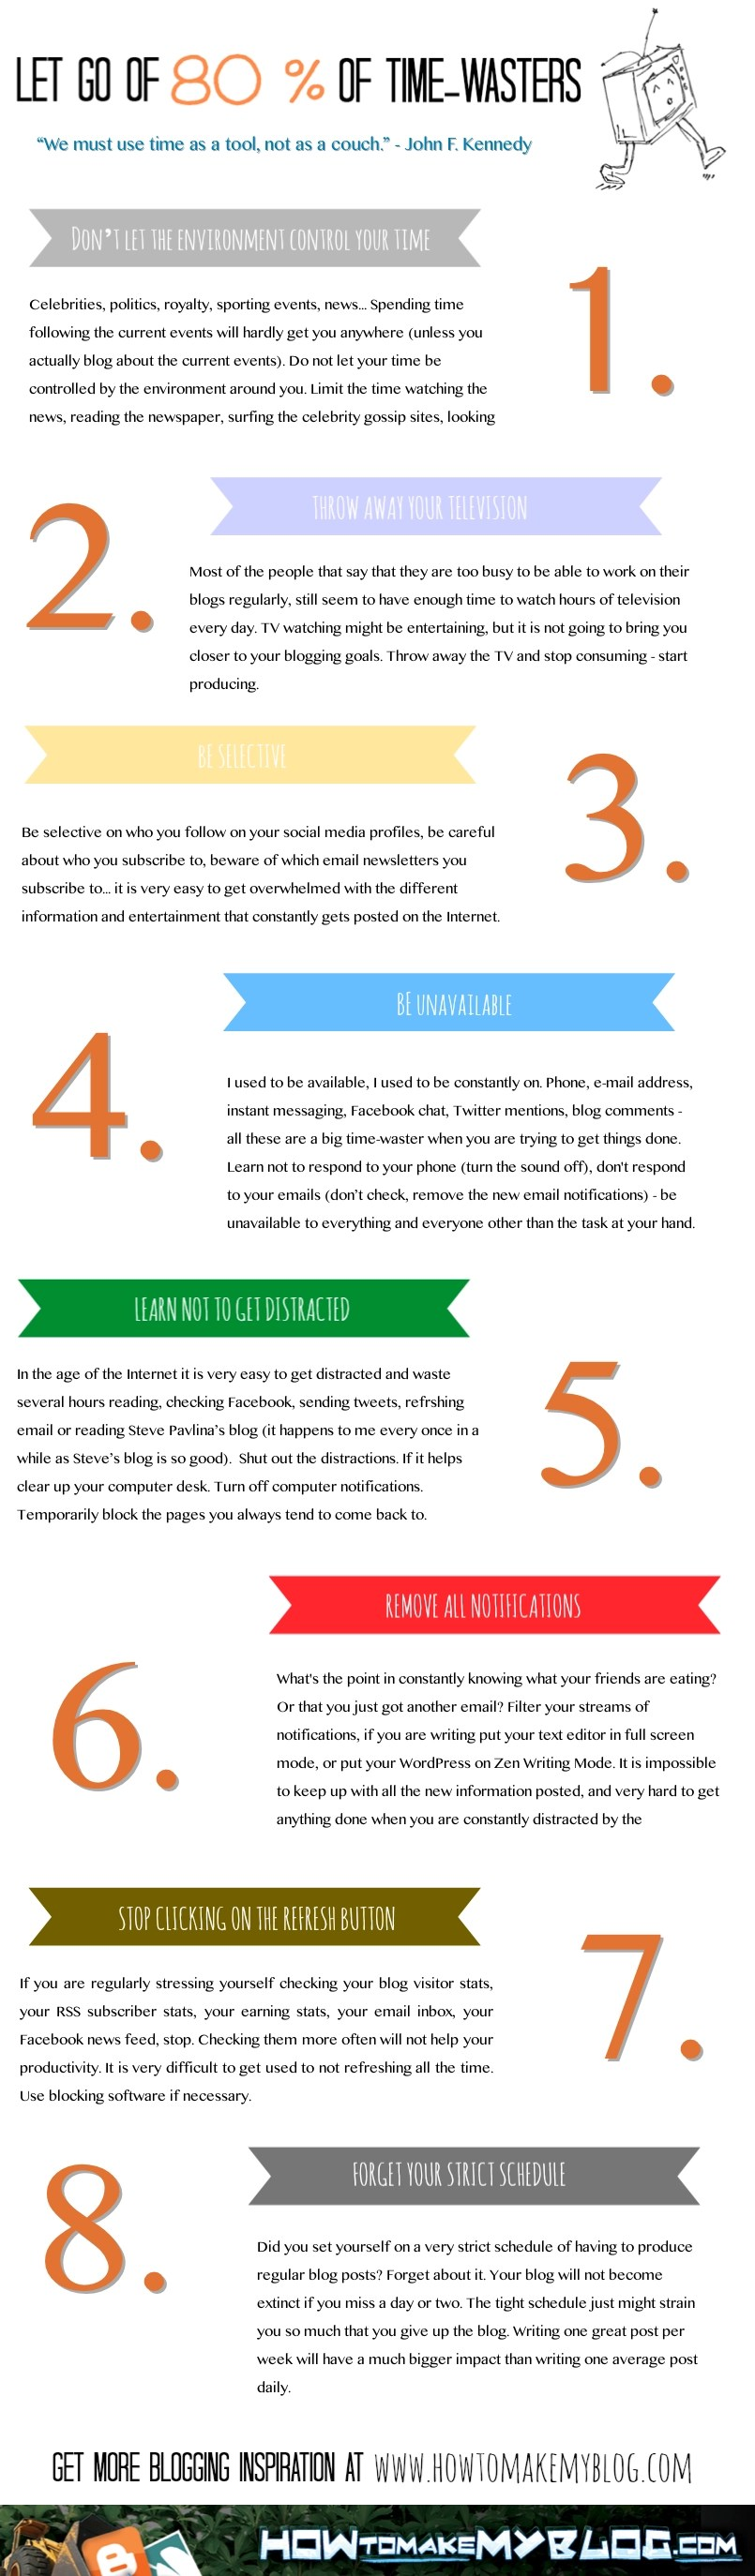 8 Time-Wasters You Should Let Go Of To Become More Productive [Infographic]